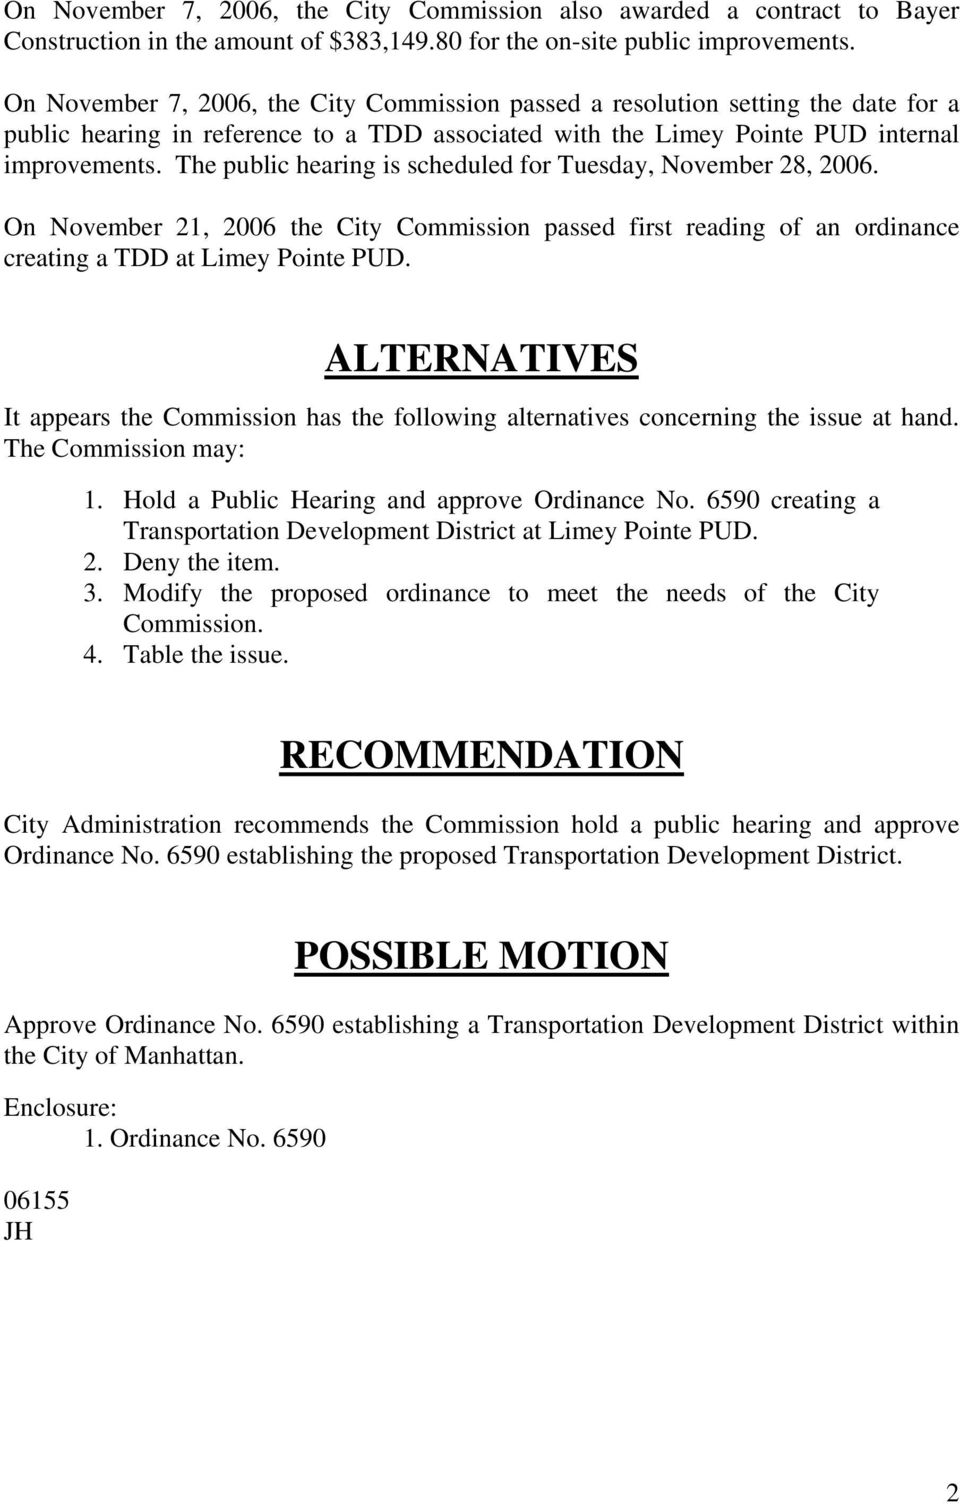 The public hearing is scheduled for Tuesday, November 28, 2006. On November 21, 2006 the City Commission passed first reading of an ordinance creating a TDD at Limey Pointe PUD.